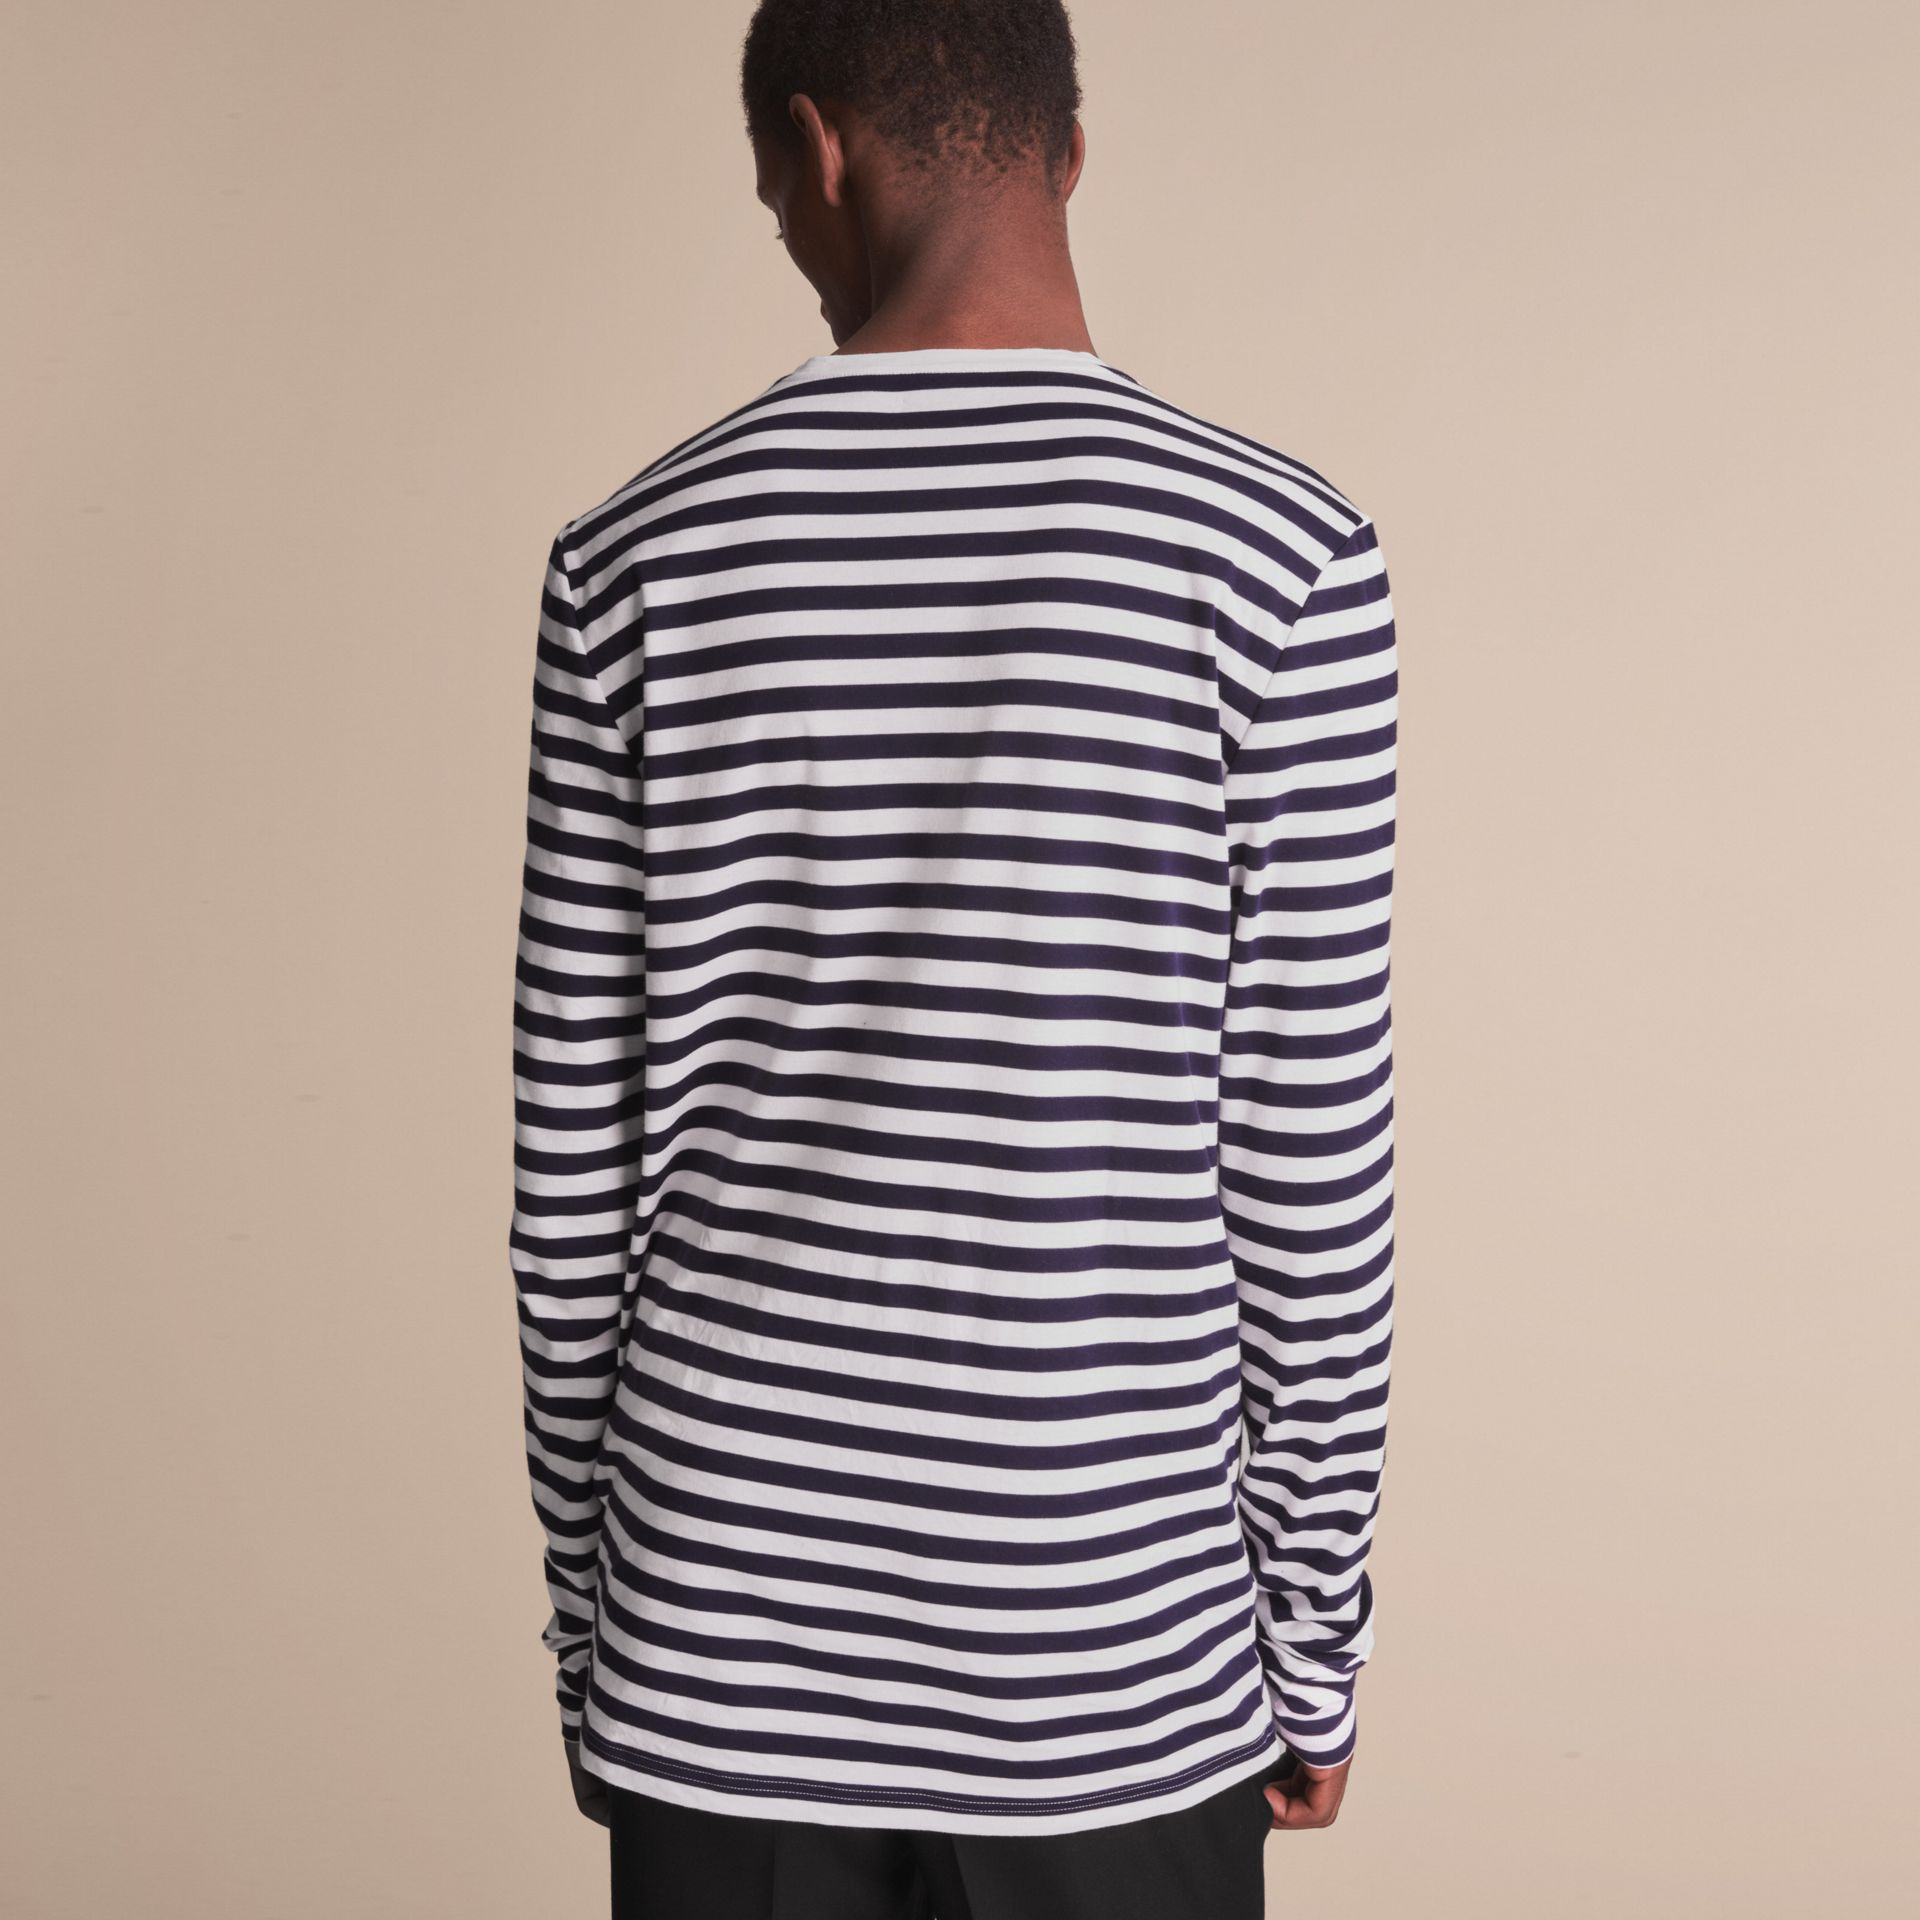 Unisex Pallas Helmet Motif Breton Stripe Cotton Top in Indigo - Men | Burberry - gallery image 5